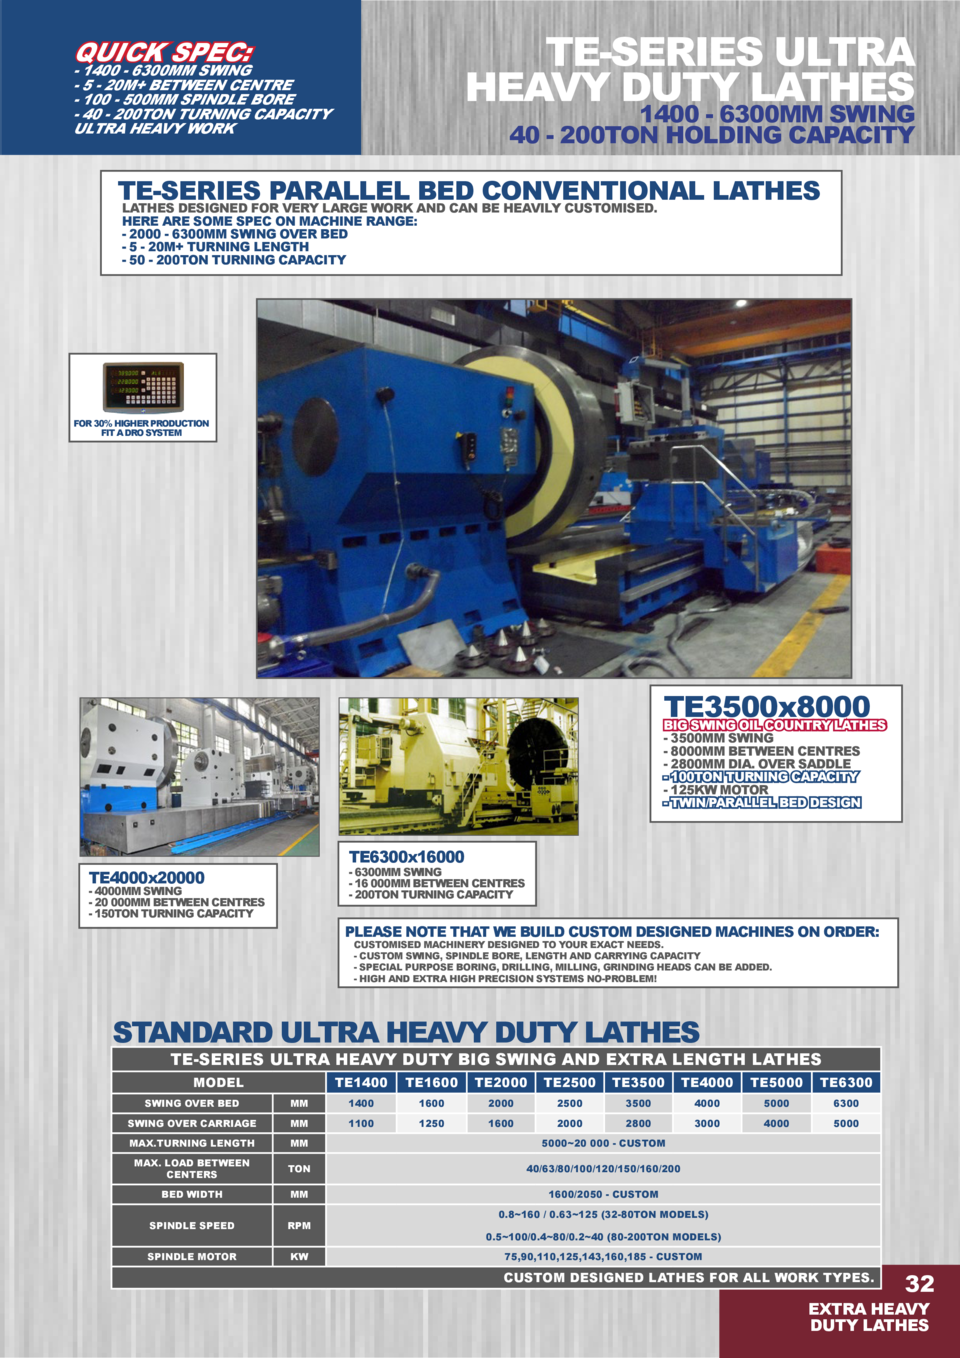 TE-SERIES ULTRA HEAVY DUTY LATHES  QUICK SPEC   - 1400 - 6300MM SWING - 5 - 20M  BETWEEN CENTRE - 100 - 500MM SPINDLE BORE...